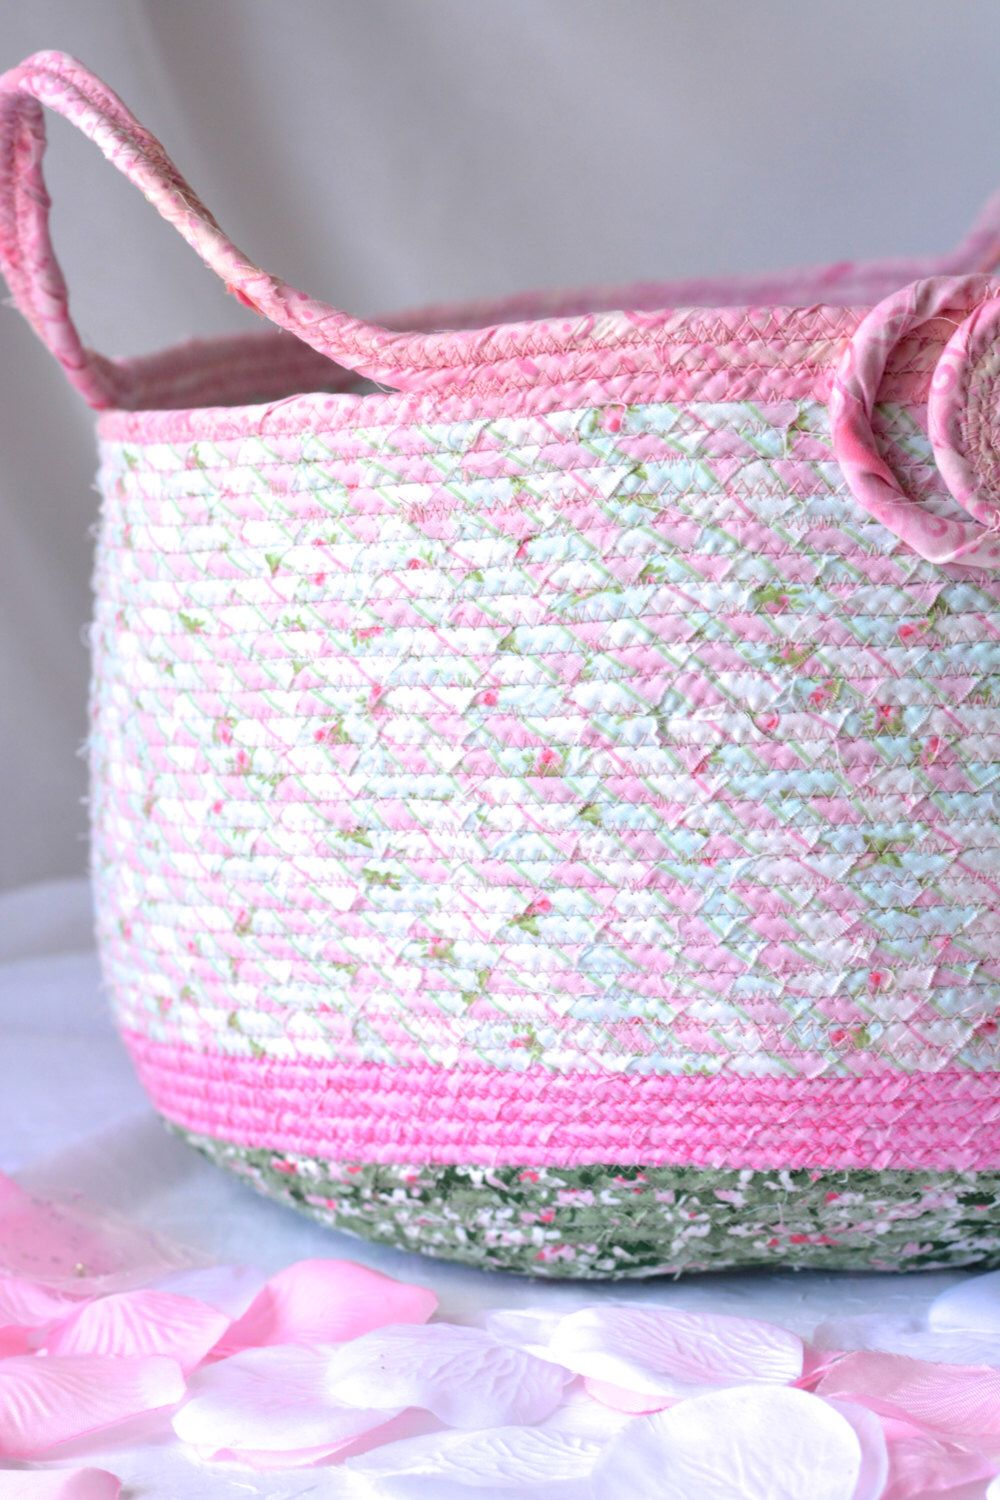 Pink Coiled Basket, Handmade Fabric Basket, Pretty Home Decor, Lovely Storage Organizer, Pink and Green Magazine Rack by WexfordTreasures on Etsy https://www.etsy.com/listing/243566531/pink-coiled-basket-handmade-fabric